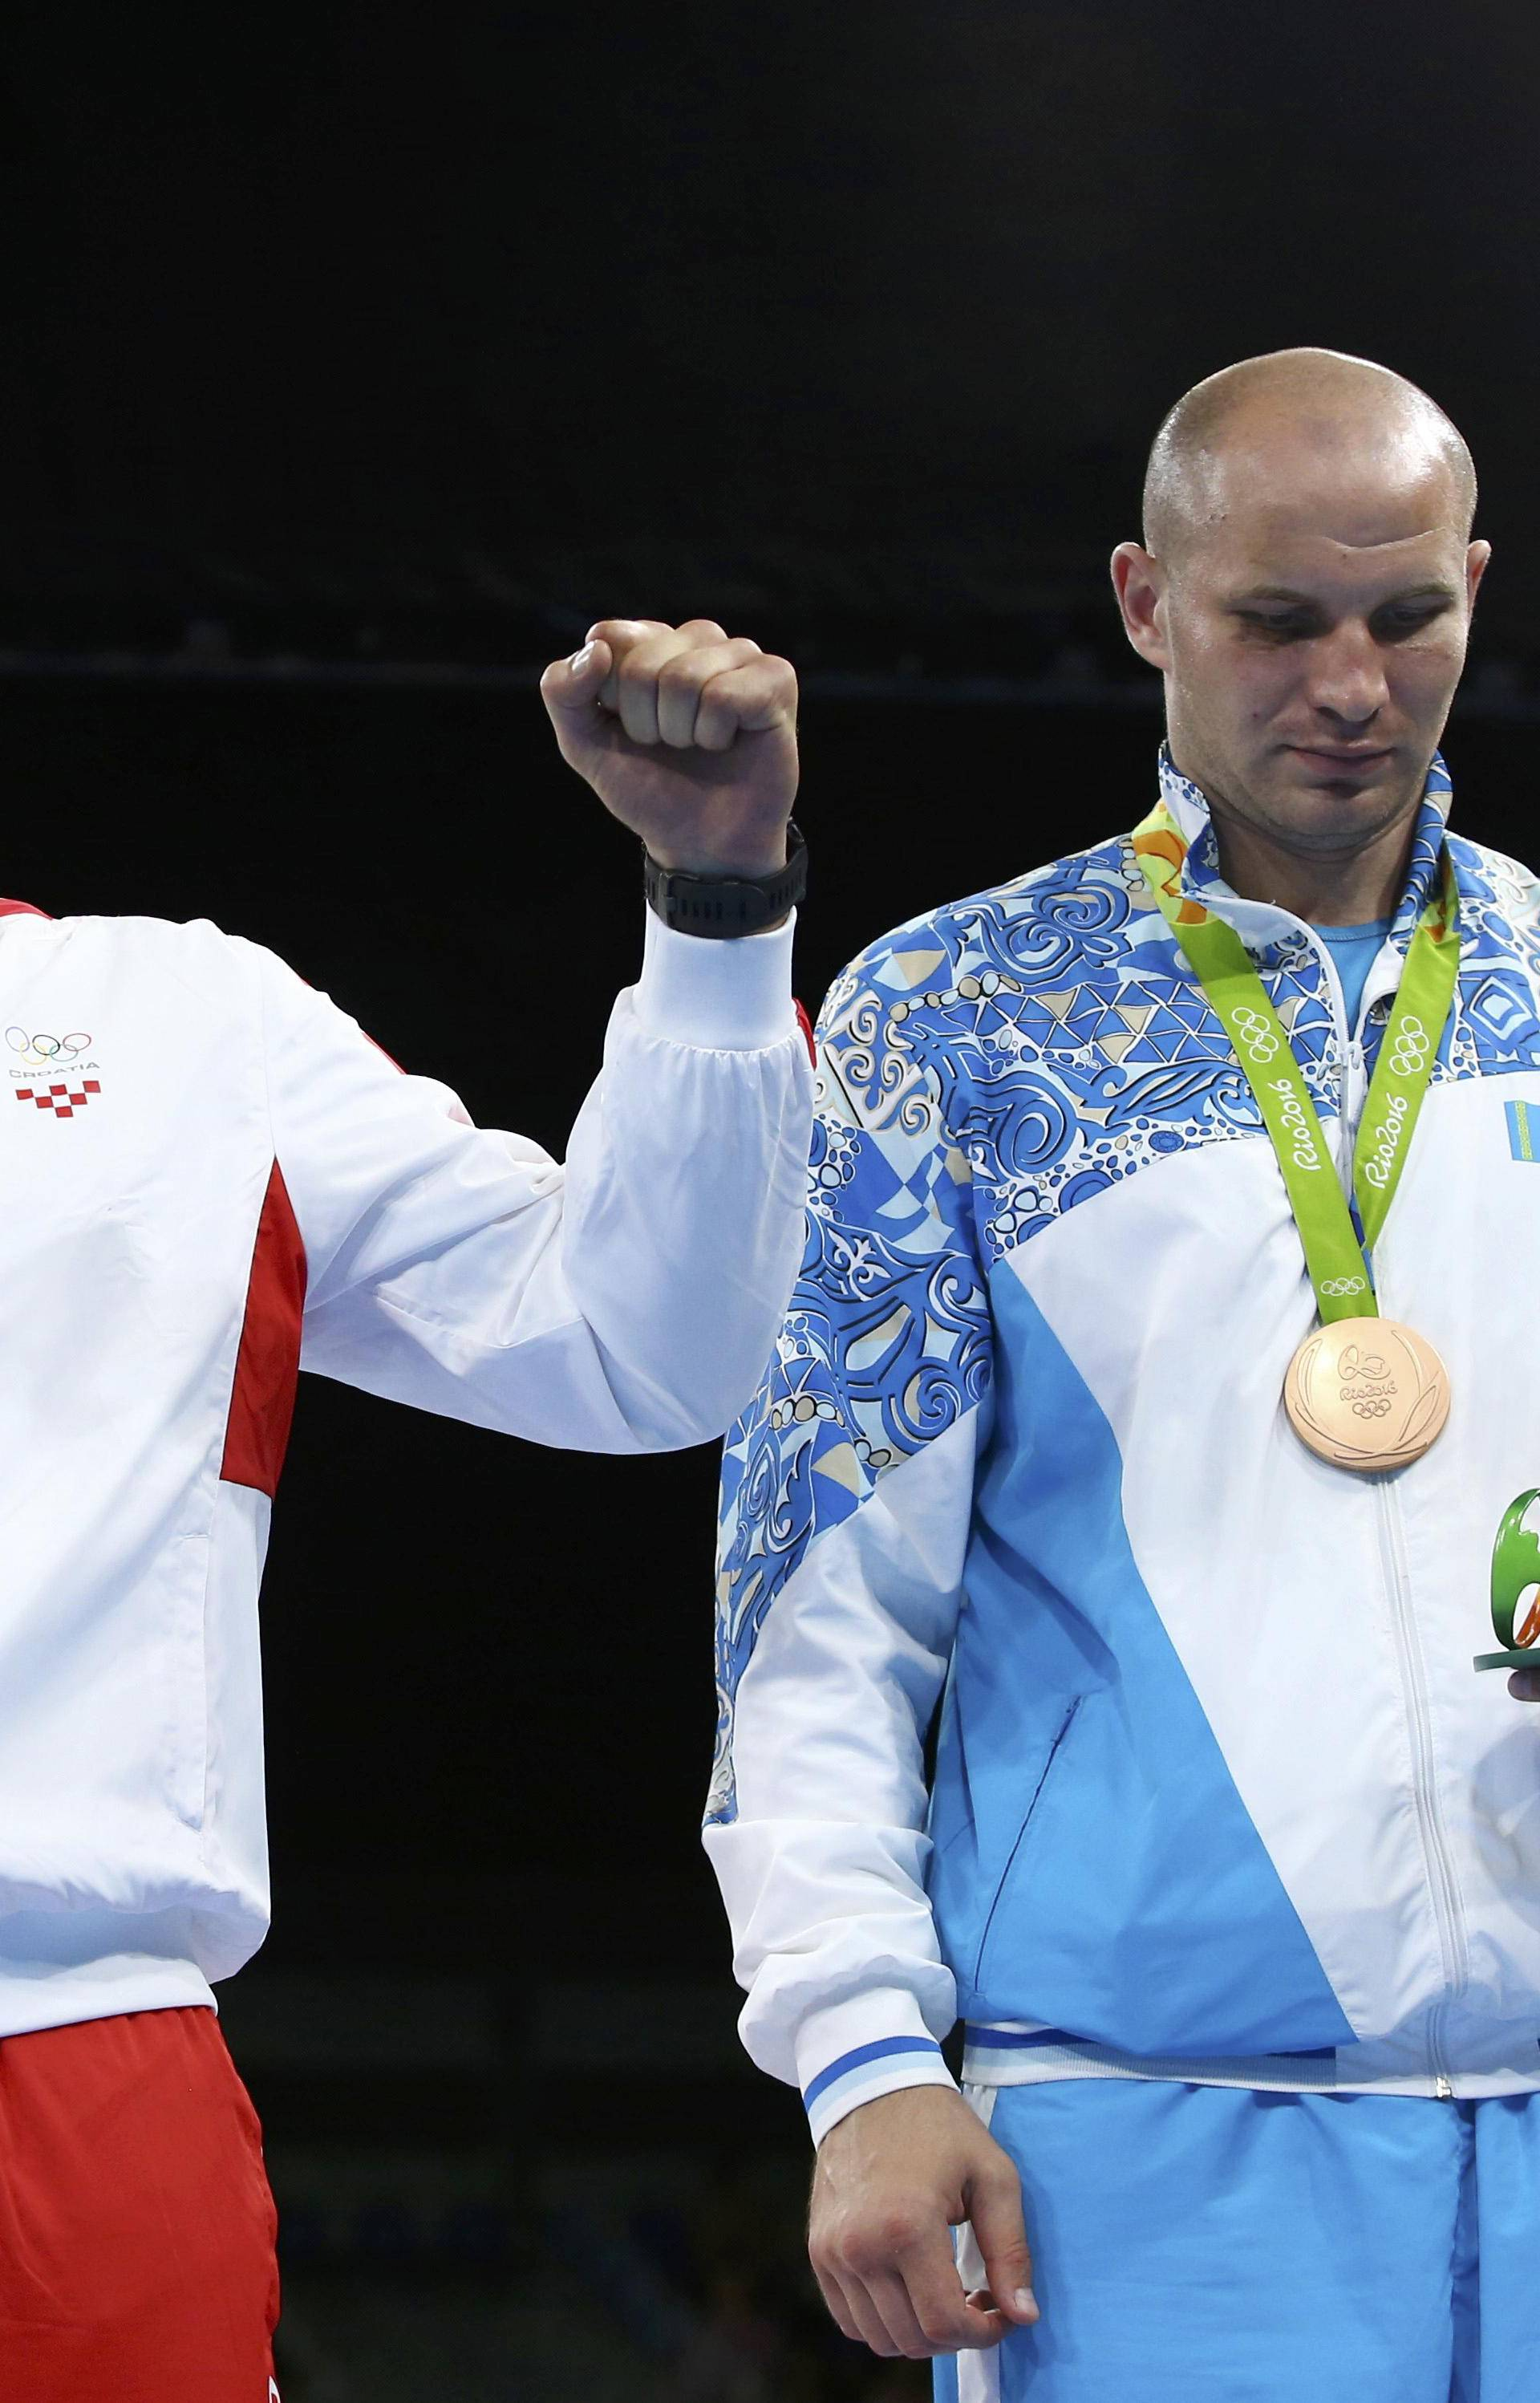 Boxing - Men's Super Heavy (+91kg) Victory Ceremony